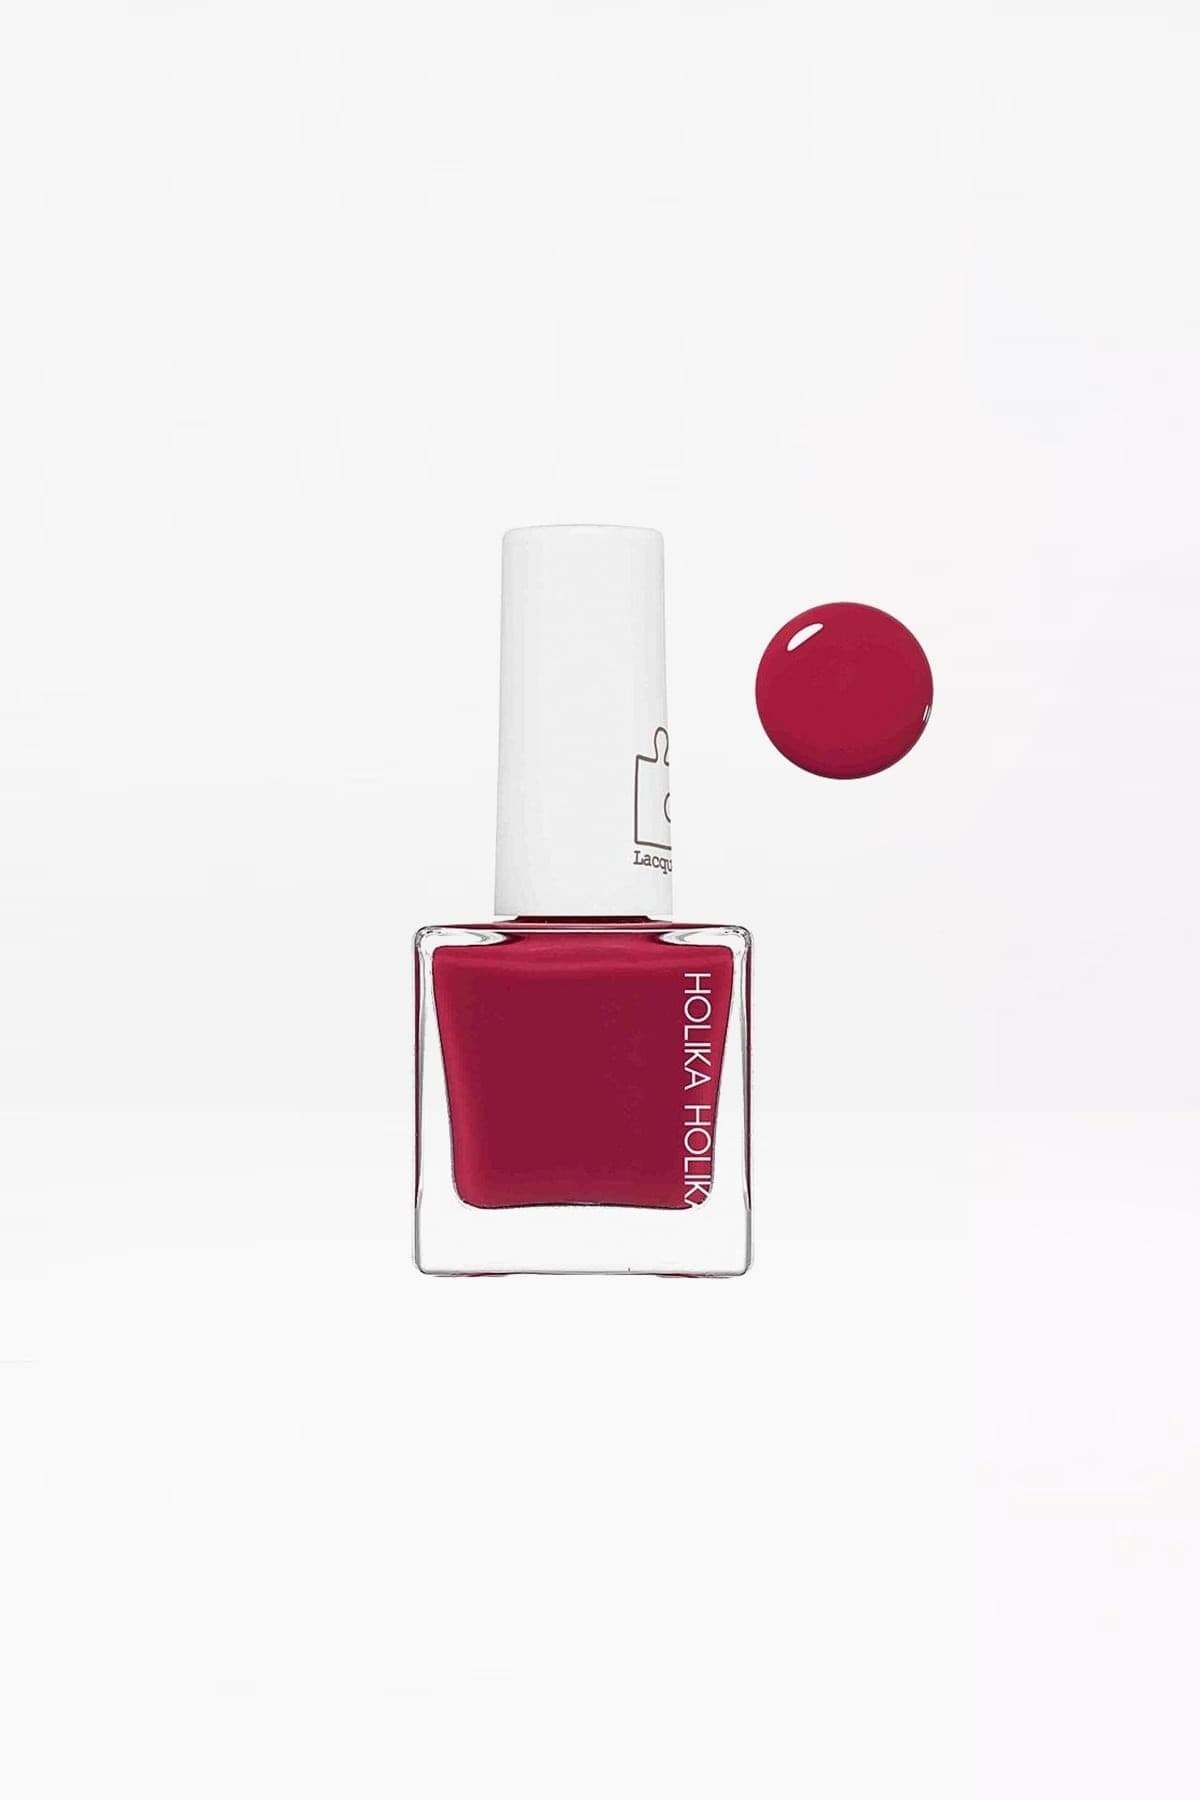 Piece Matching Nails Lacquer Flower Mermaid 10ml